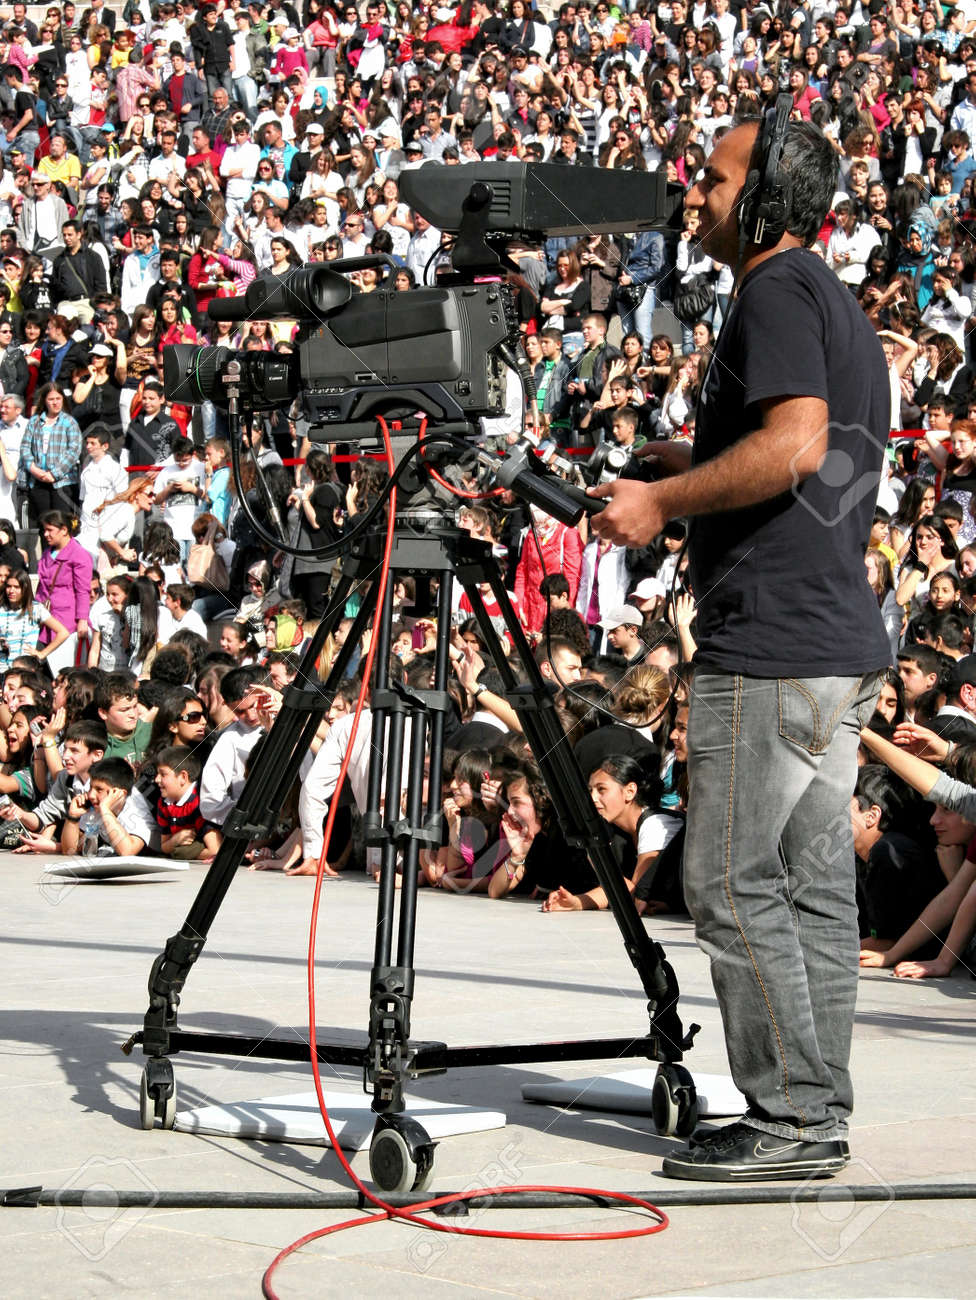 Istanbul - April 25, 2010: Camera on record during folk show on Children's Day at Maltepe Stock Photo - 7076914